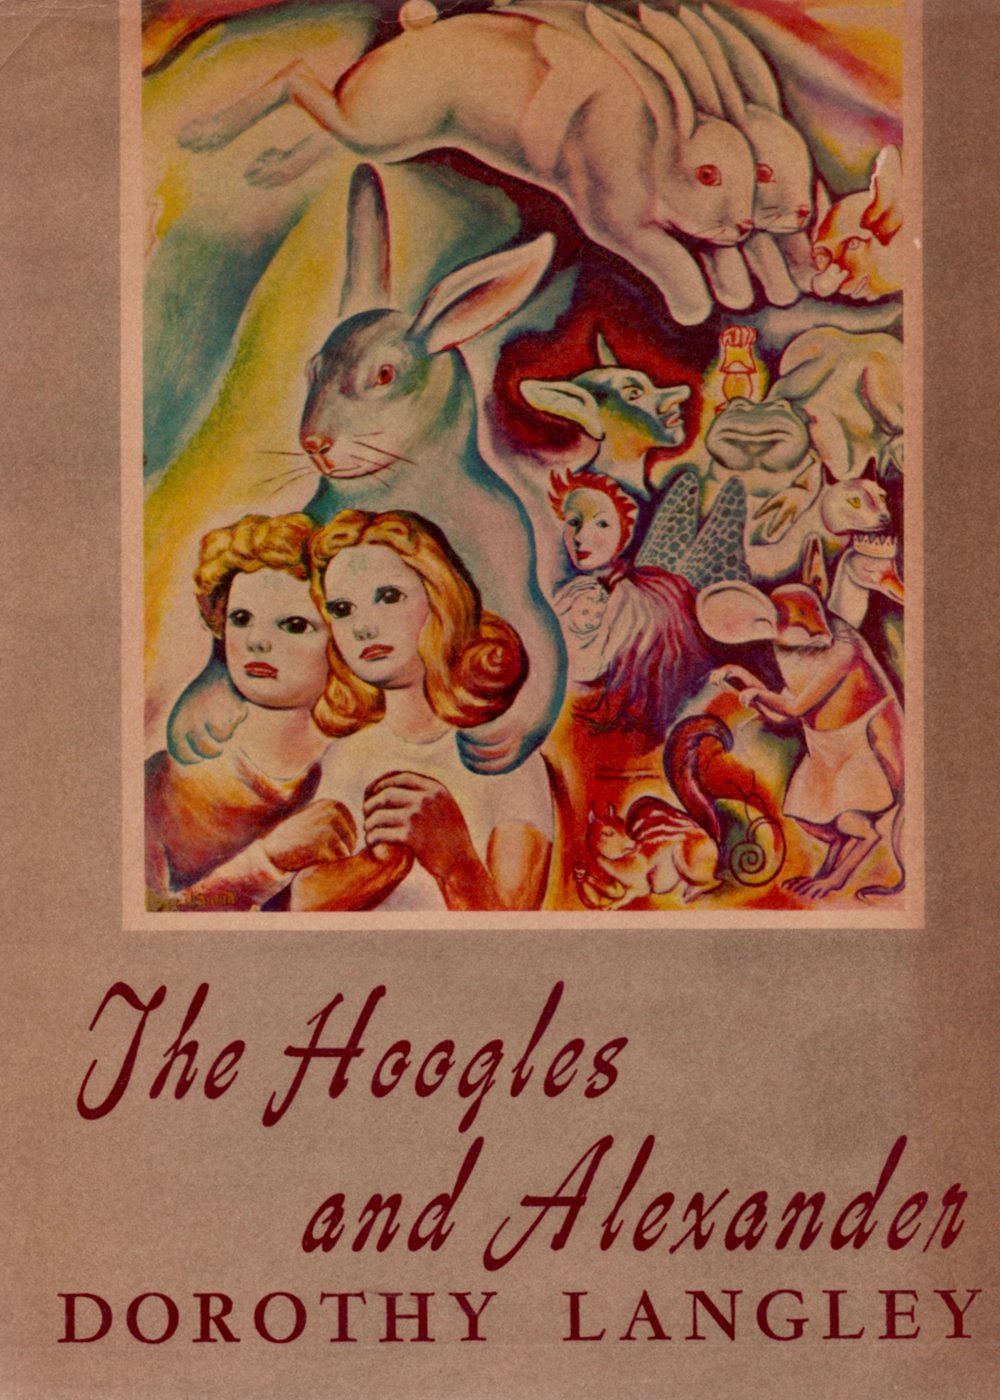 The Hoogles cover.jpg